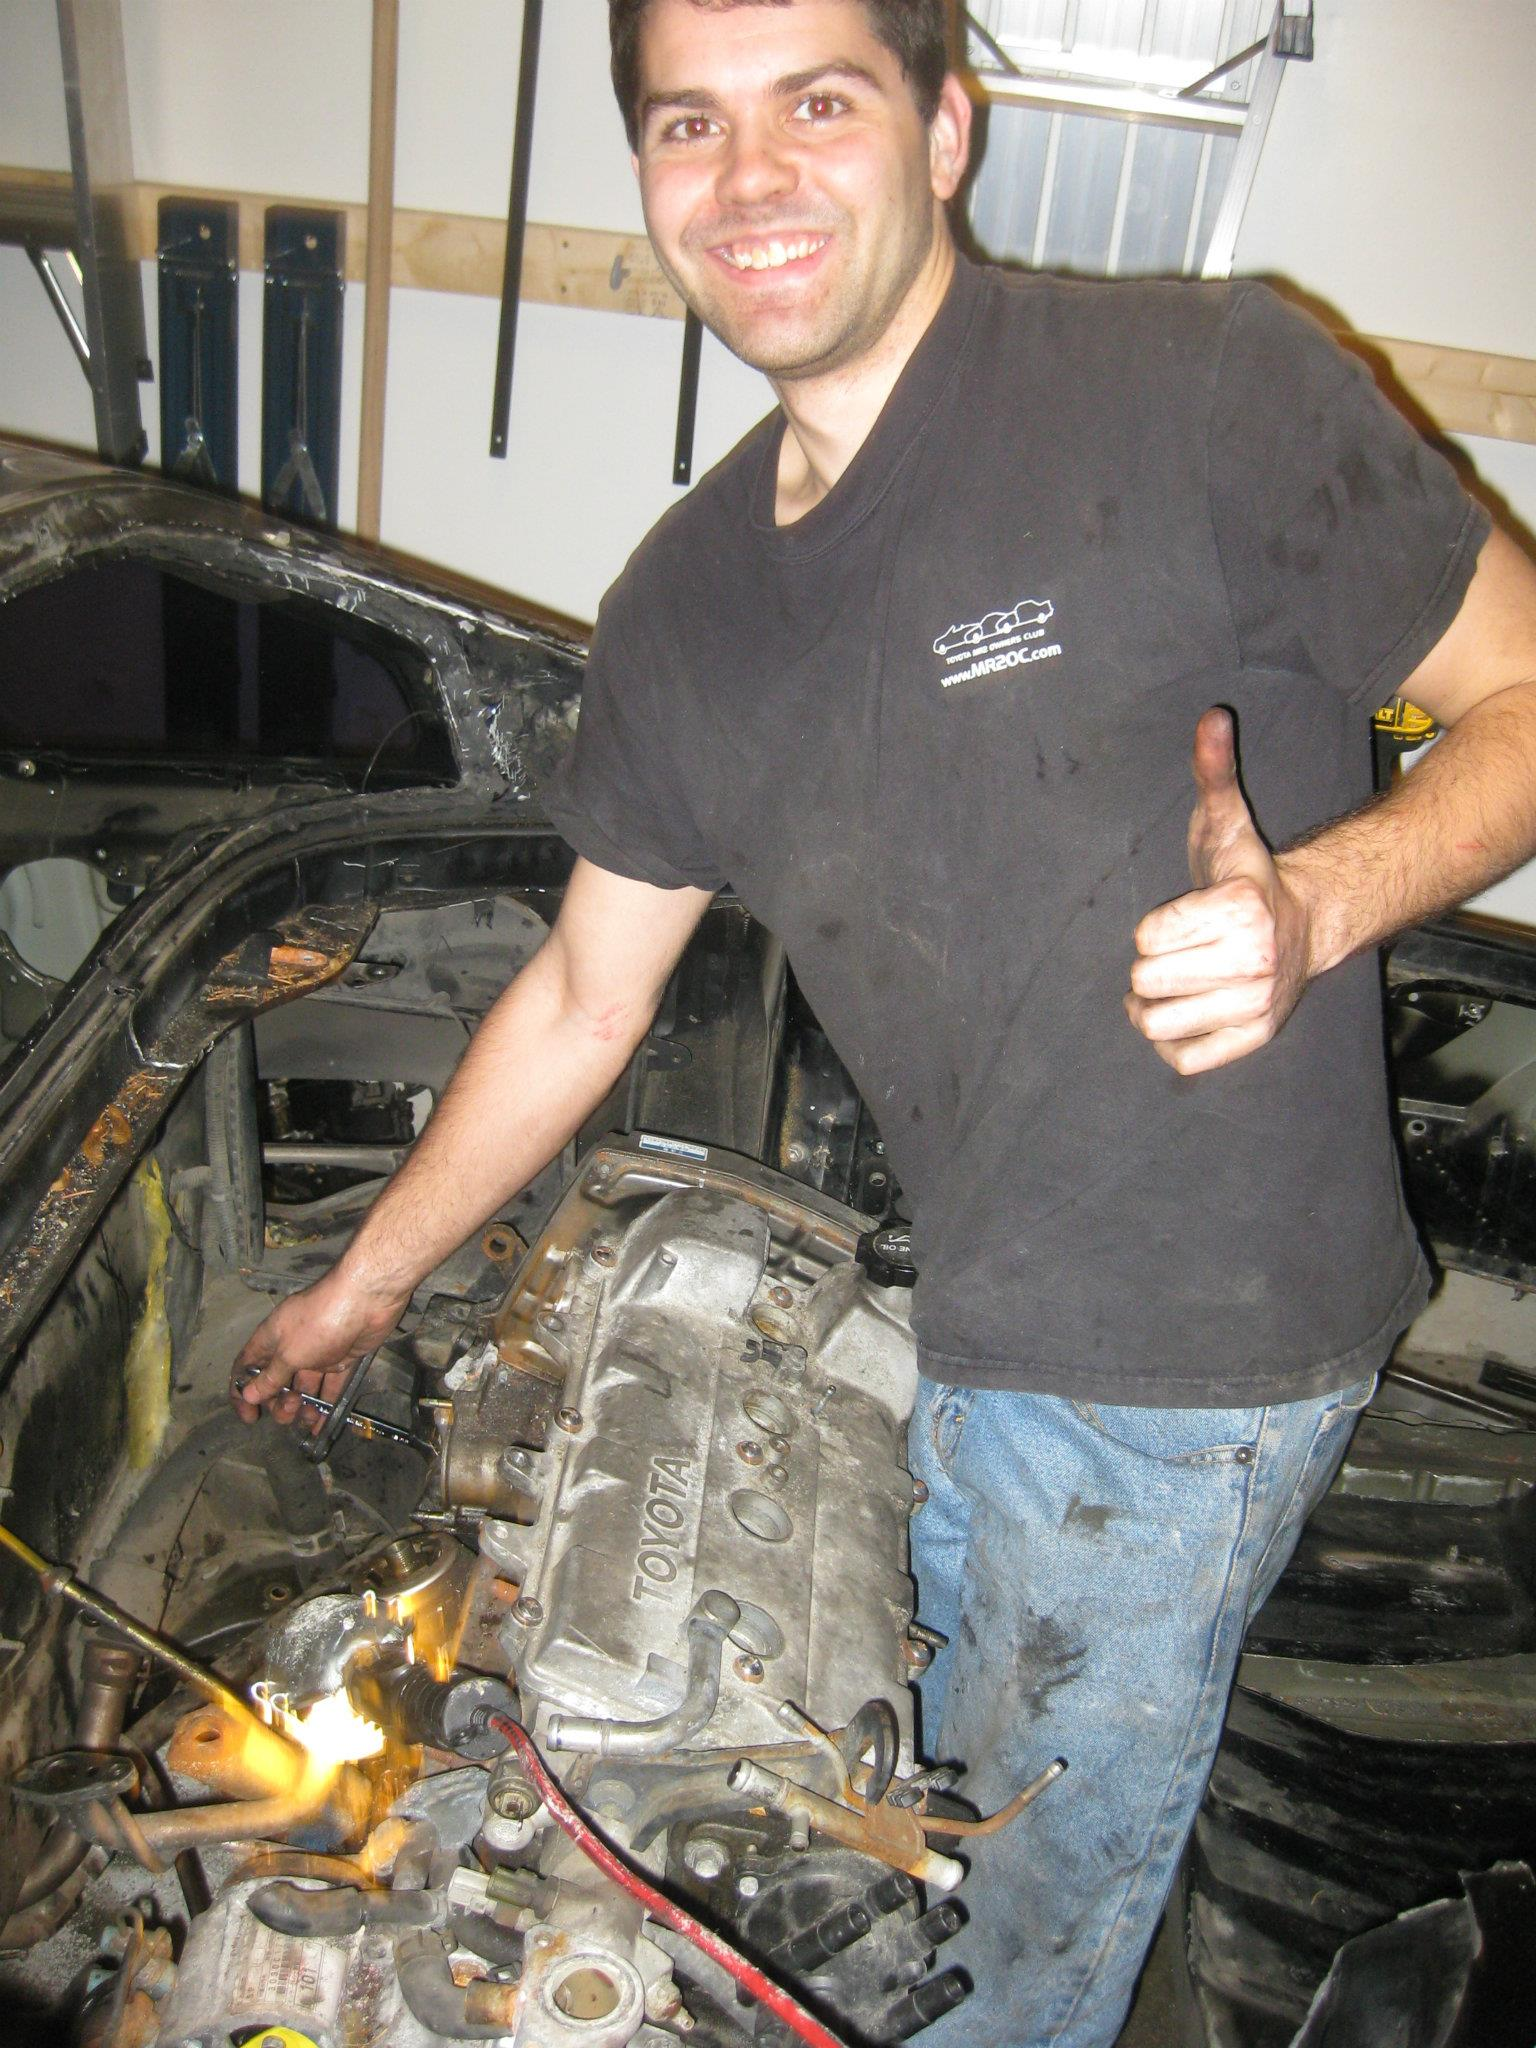 A picture of Bill working on a car